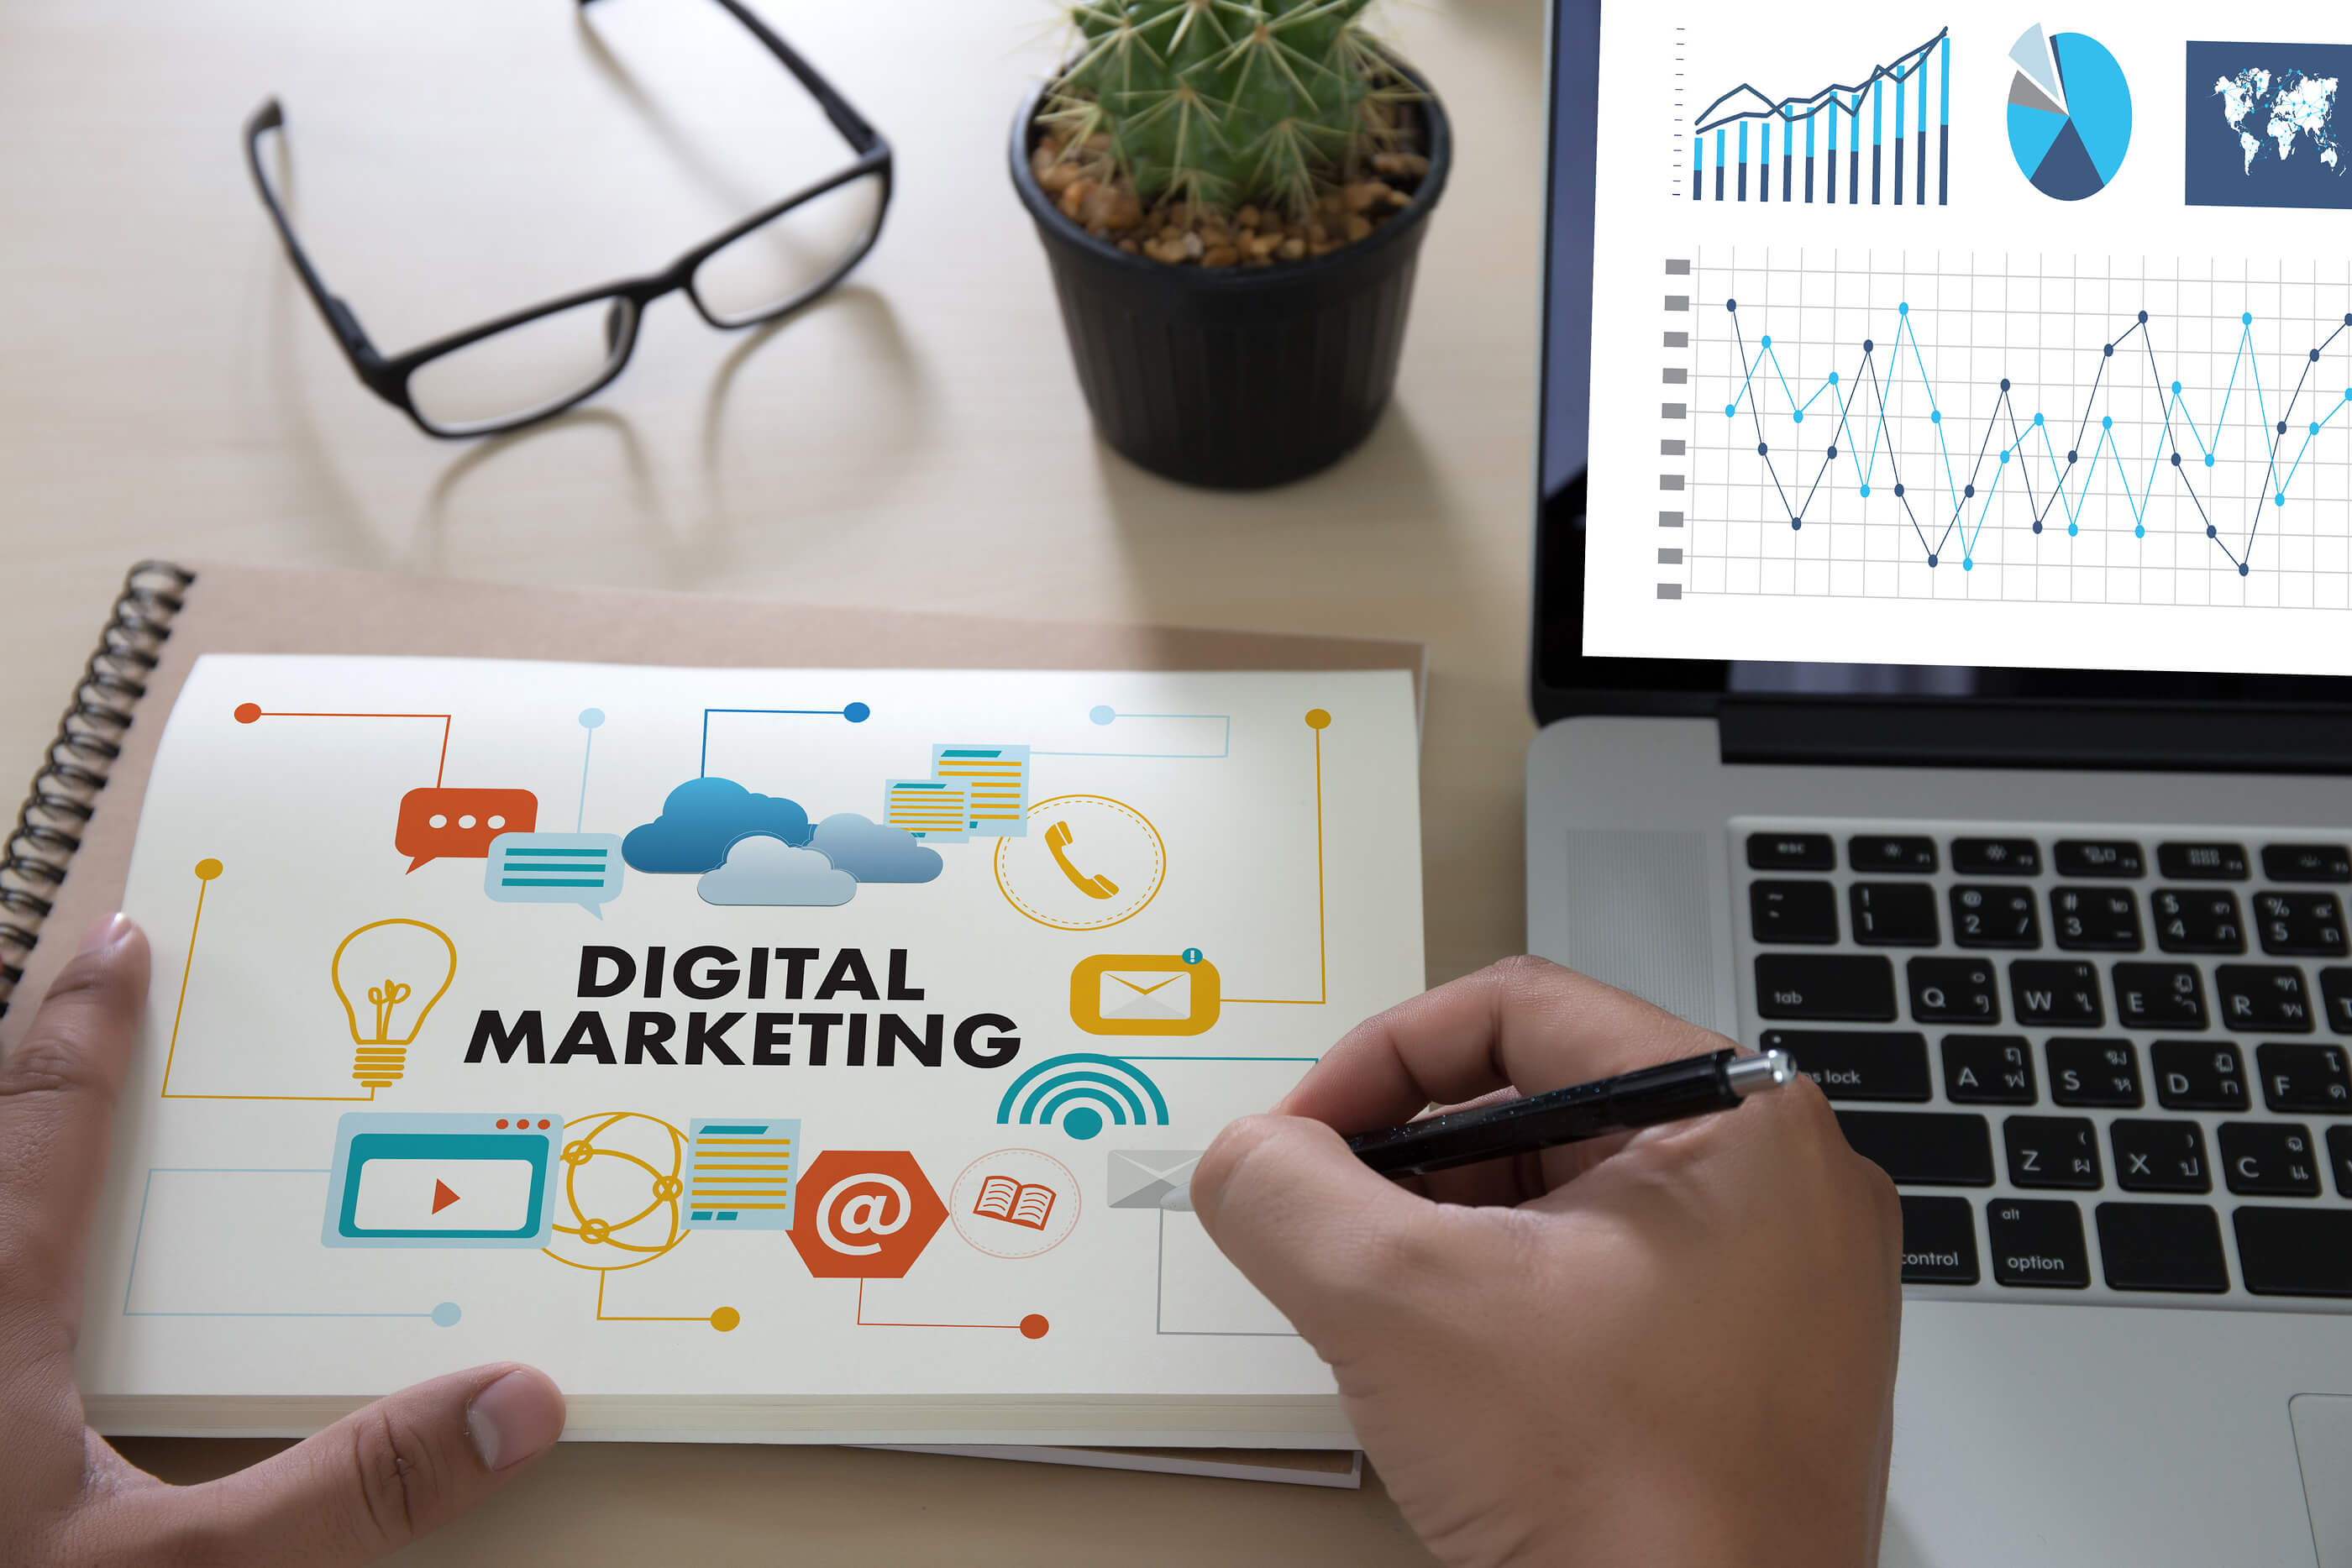 5 motivos para investir no marketing digital e aumentar as suas vendas